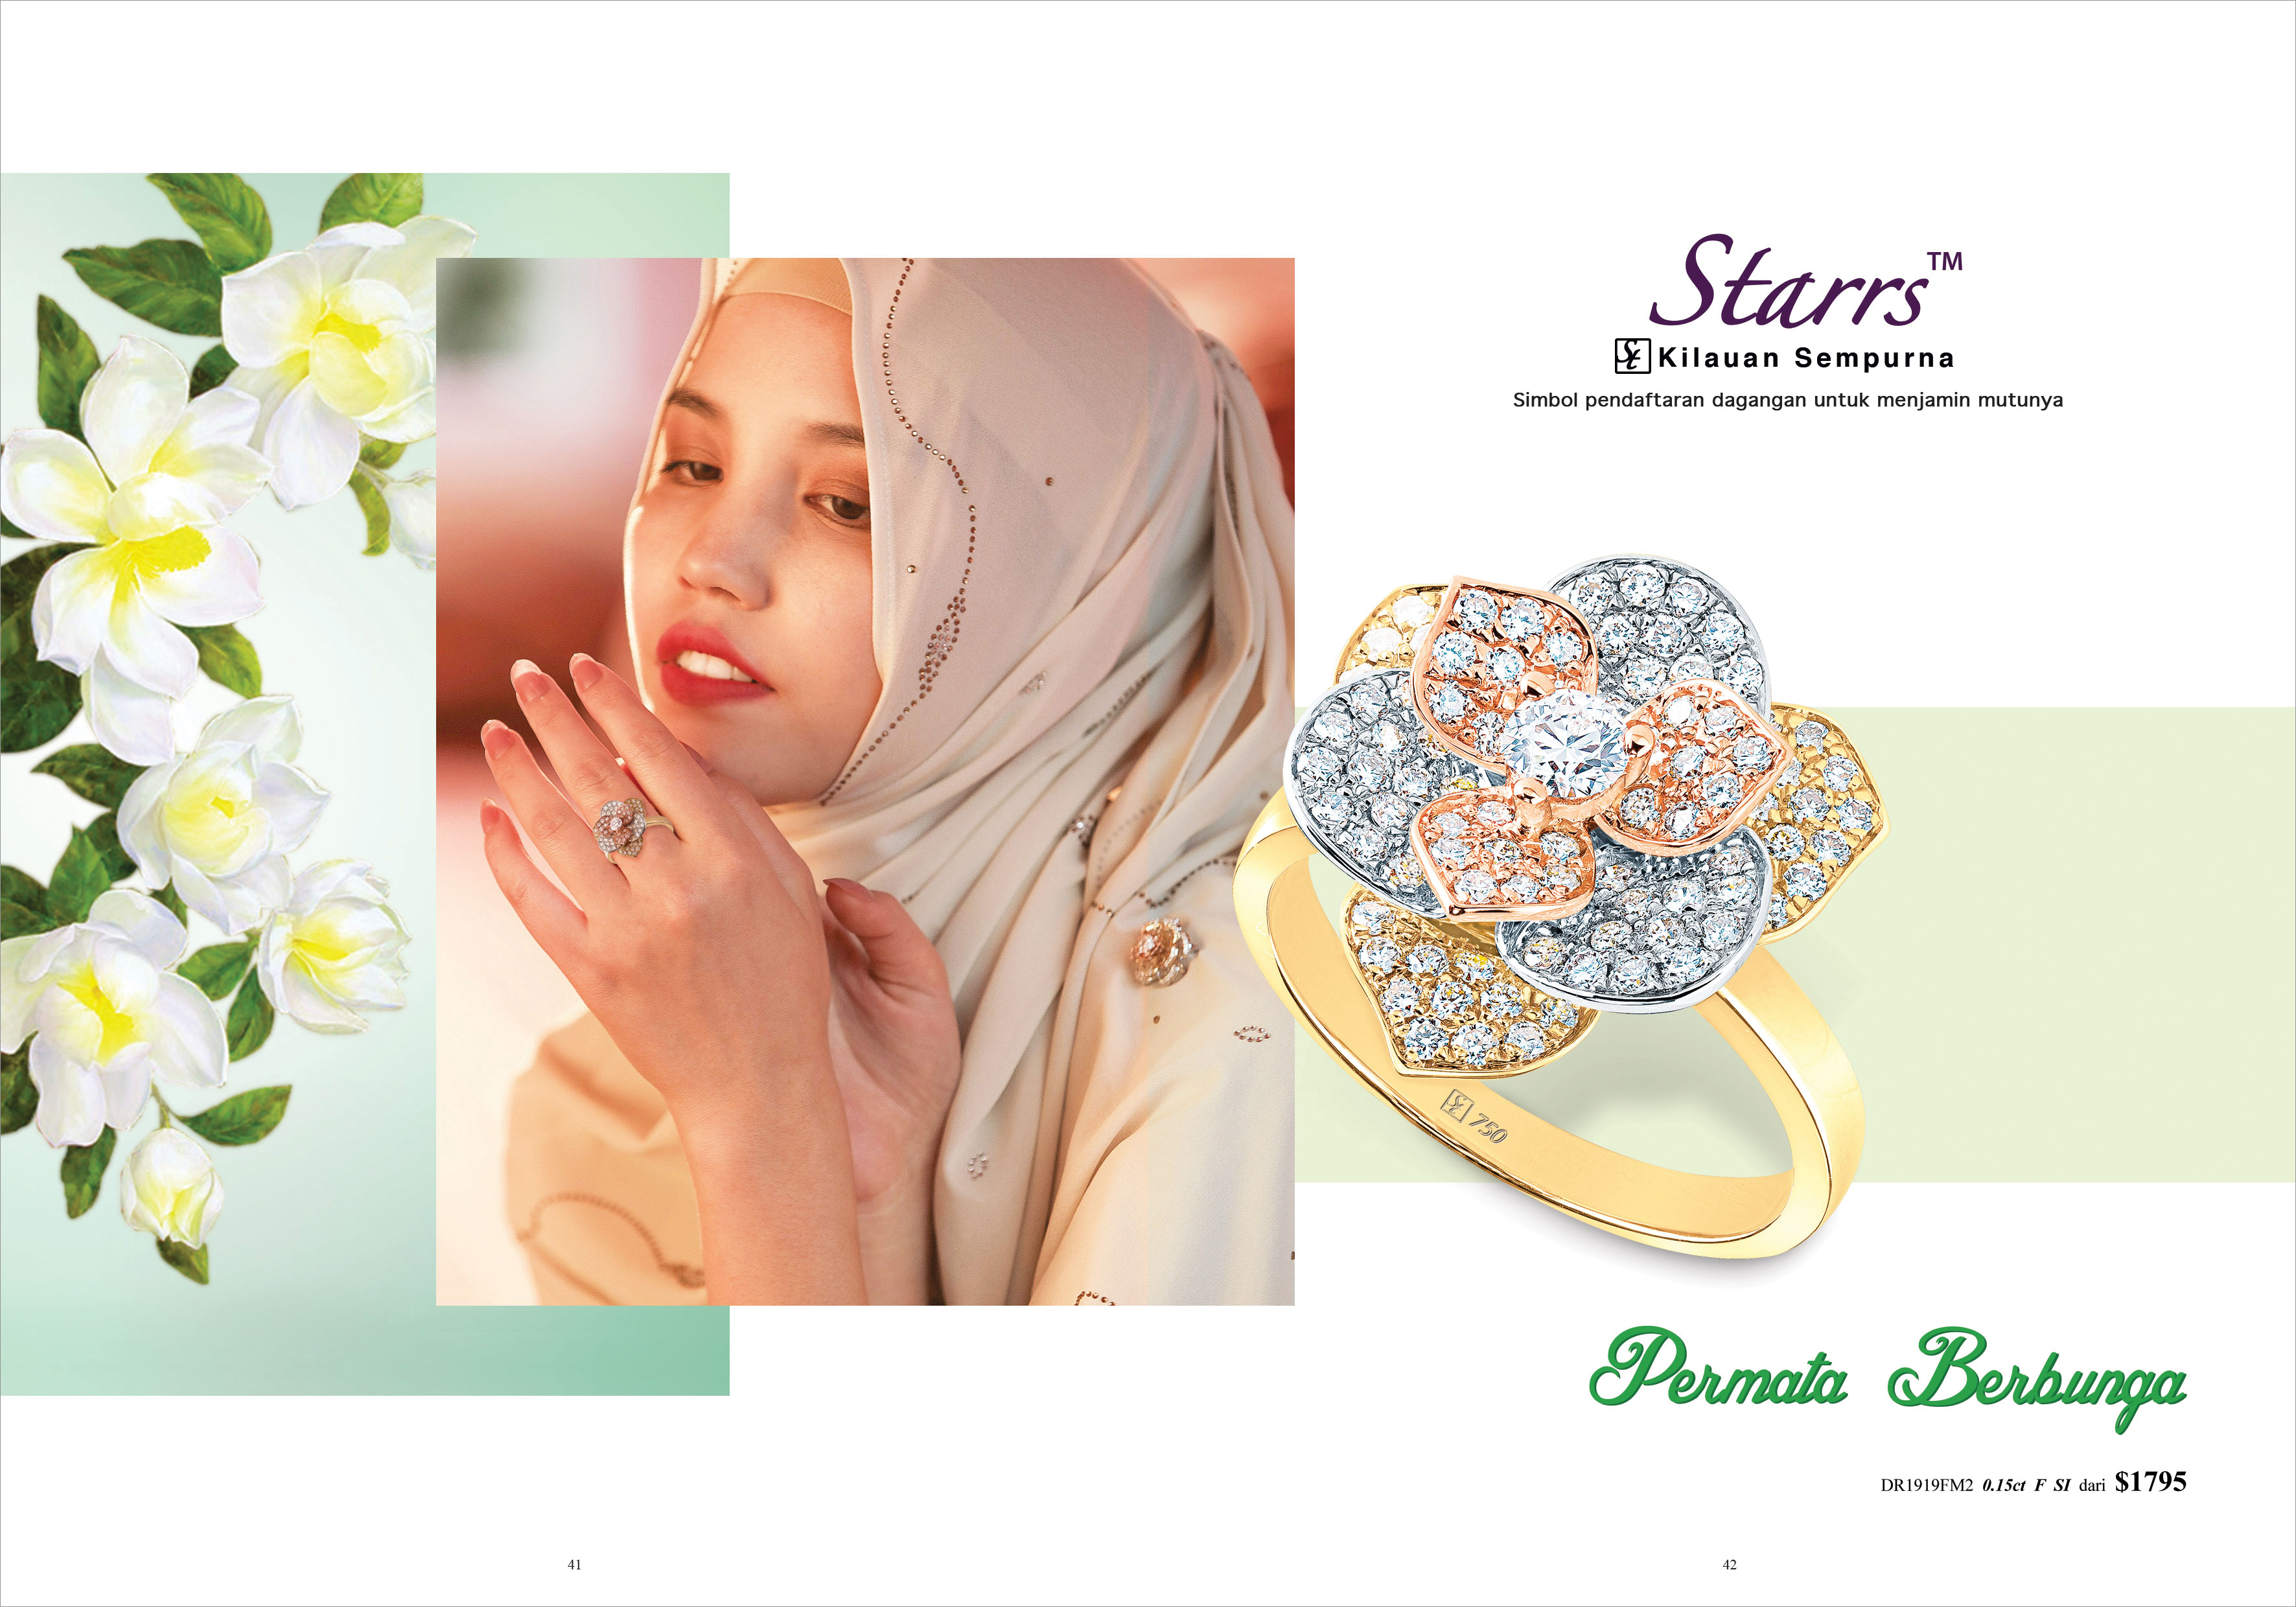 Ming Seng starrs diamond ring